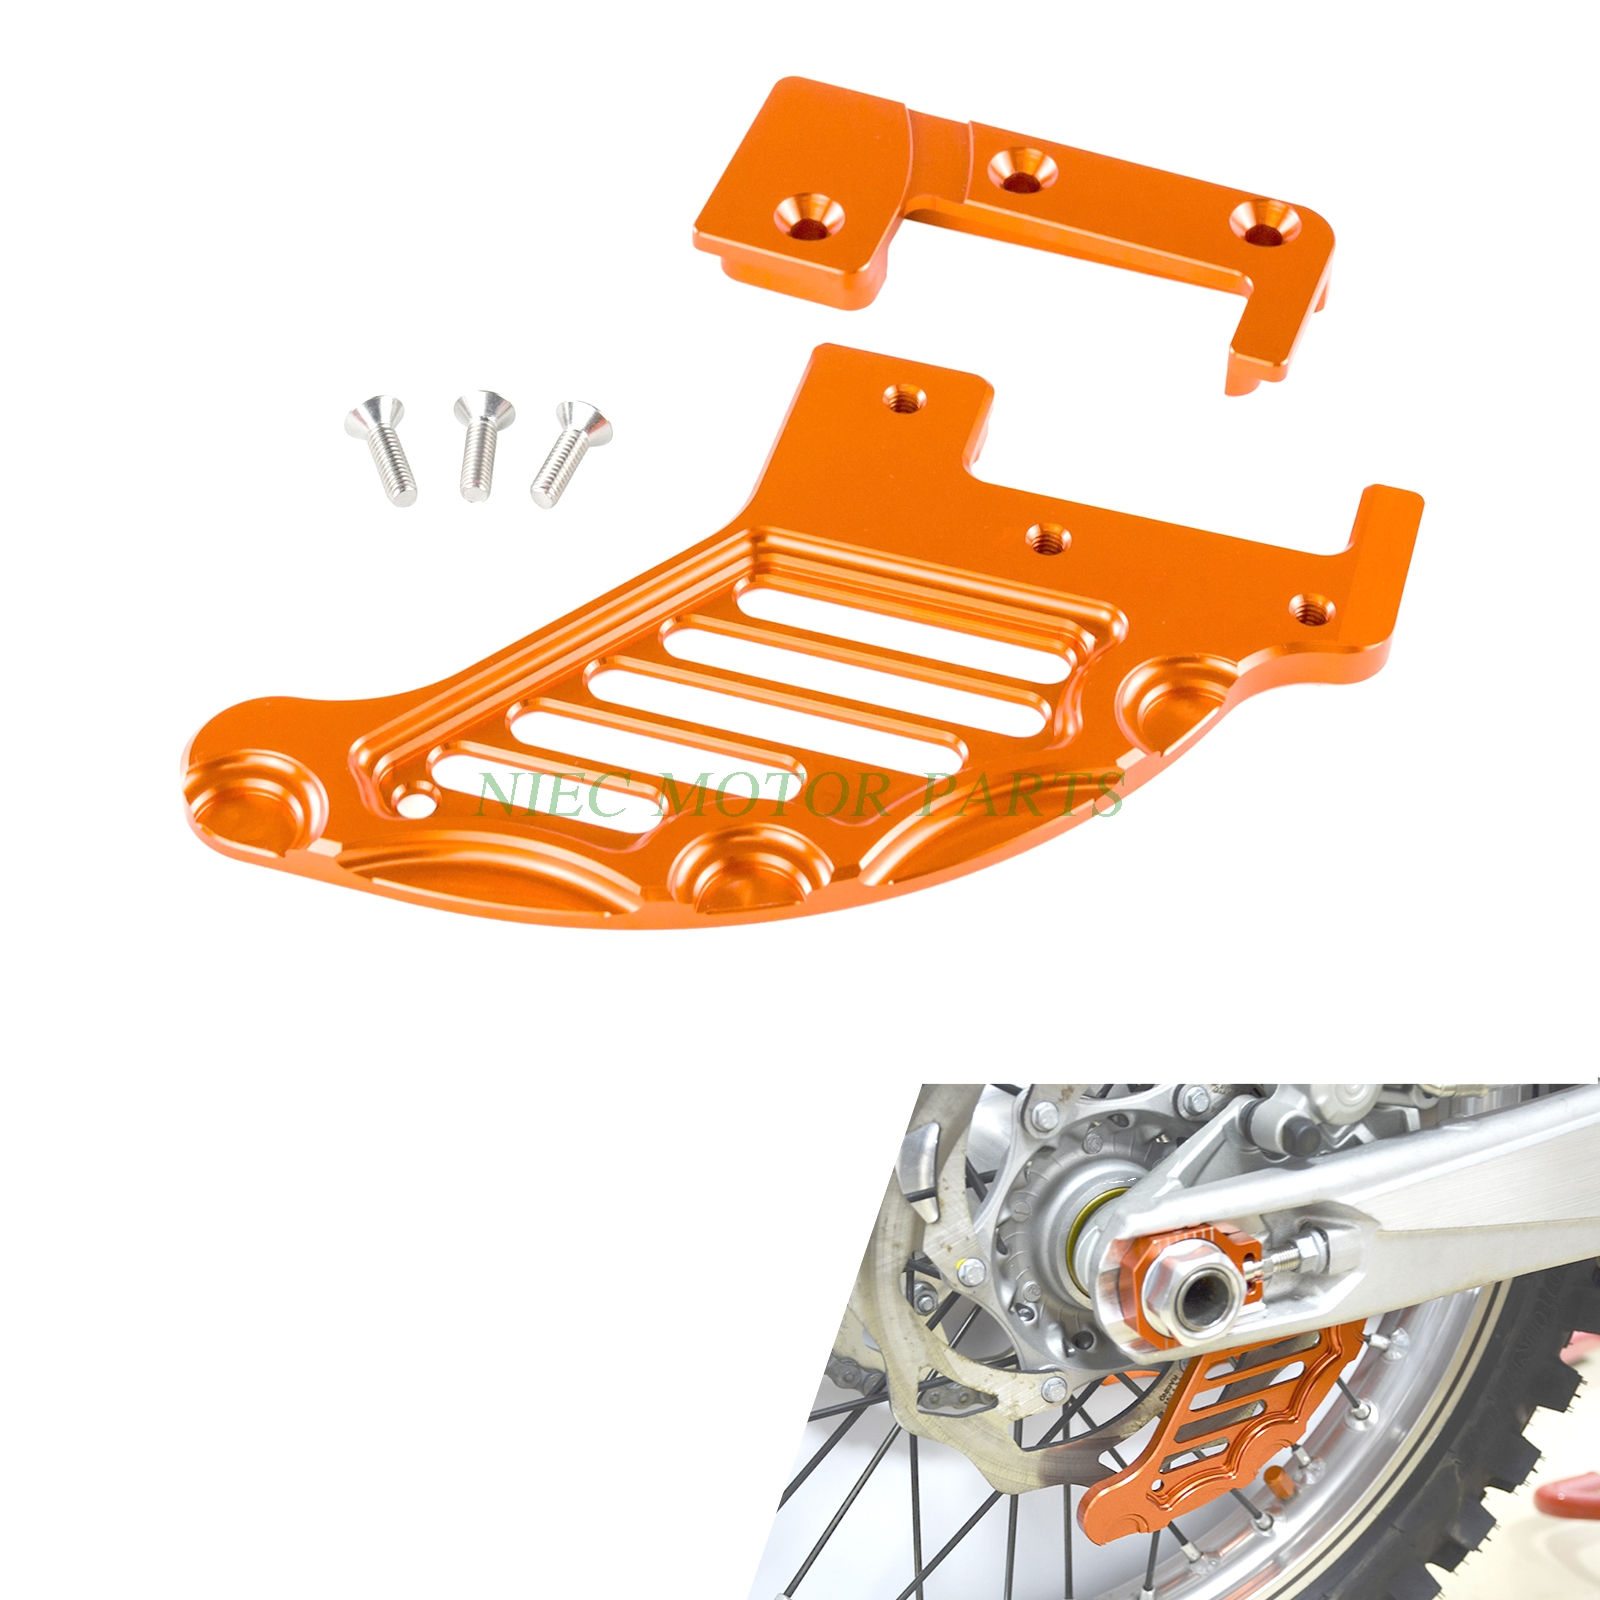 ORANGE CNC REAR BRAKE DISC GUARD For KTM 150 200 250 300 350 400 450 525 530  EXC EXC-F SX SX-F XC XCF XCW MXC 2004-2017 цена 2016